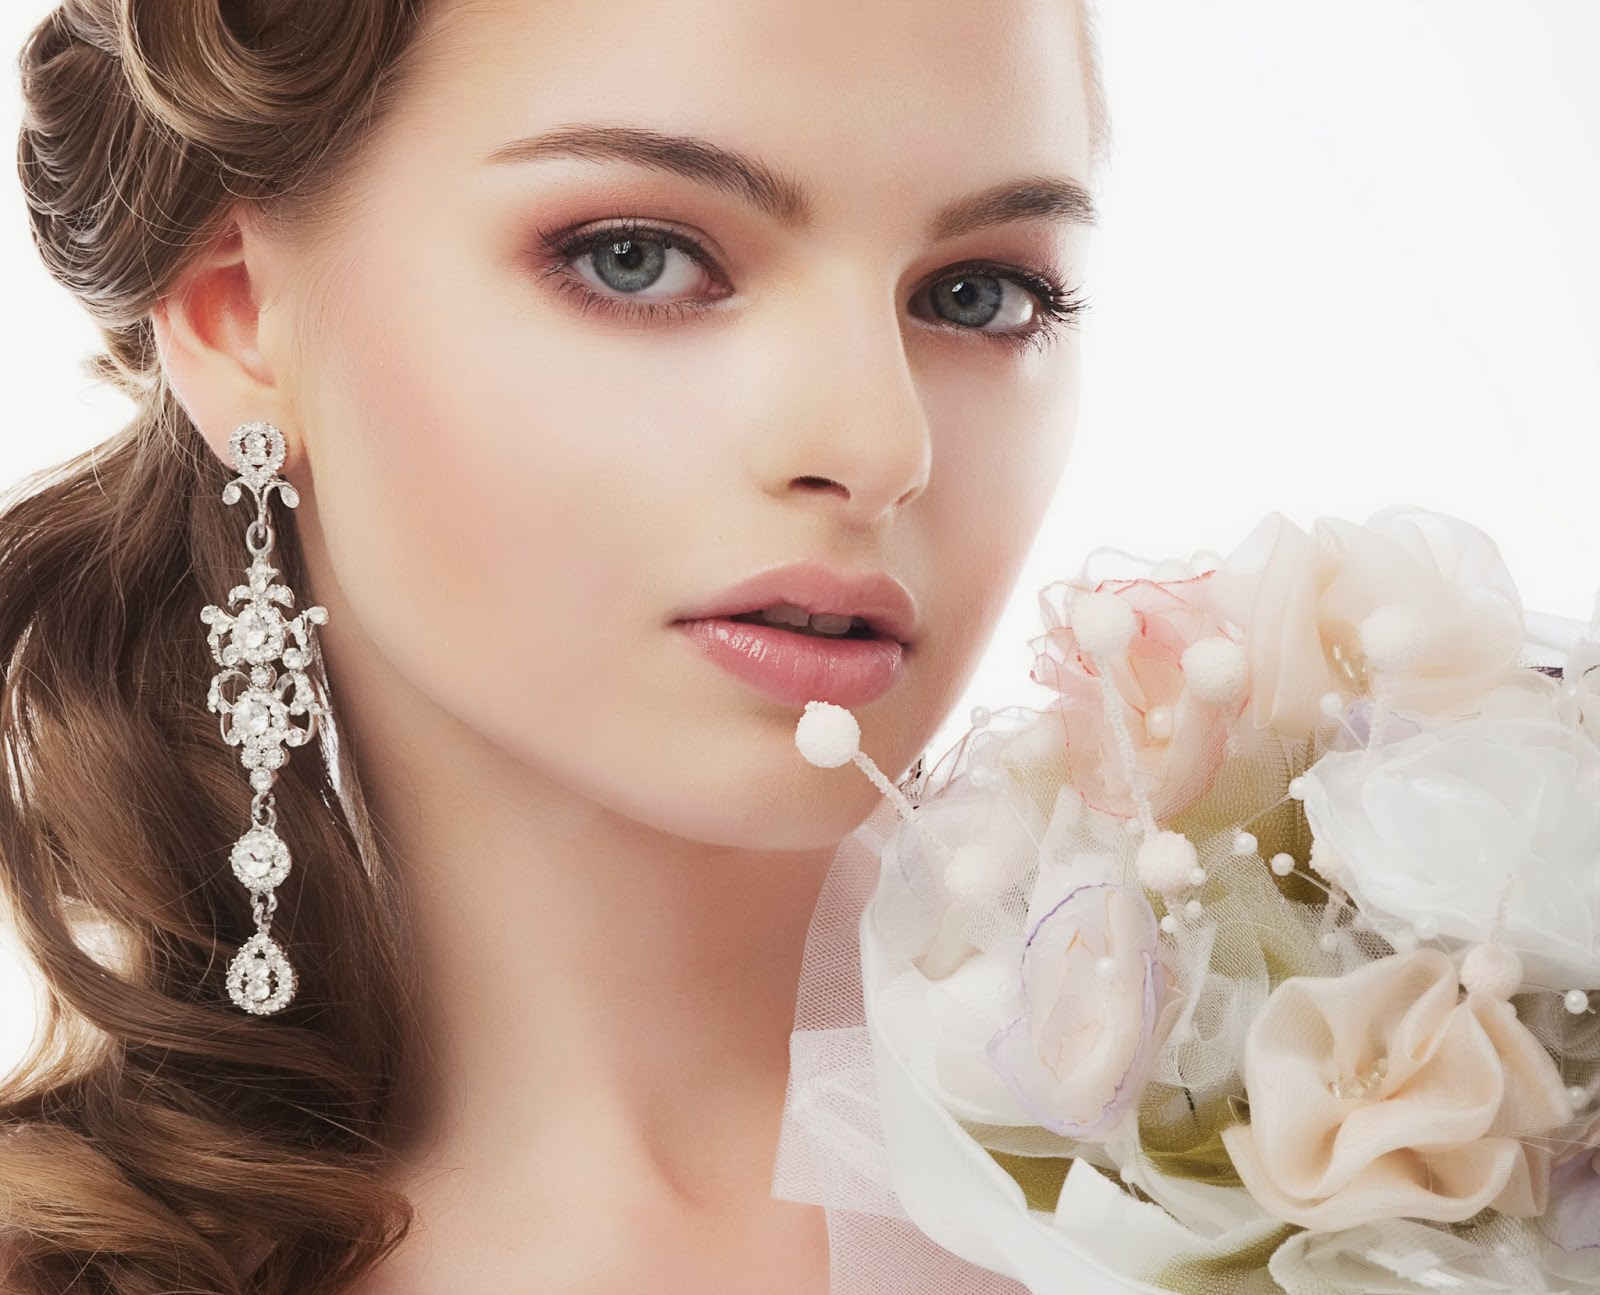 Bridal Makeup For Destination Wedding : Memorable Wedding: The Best Wedding Makeup Tips